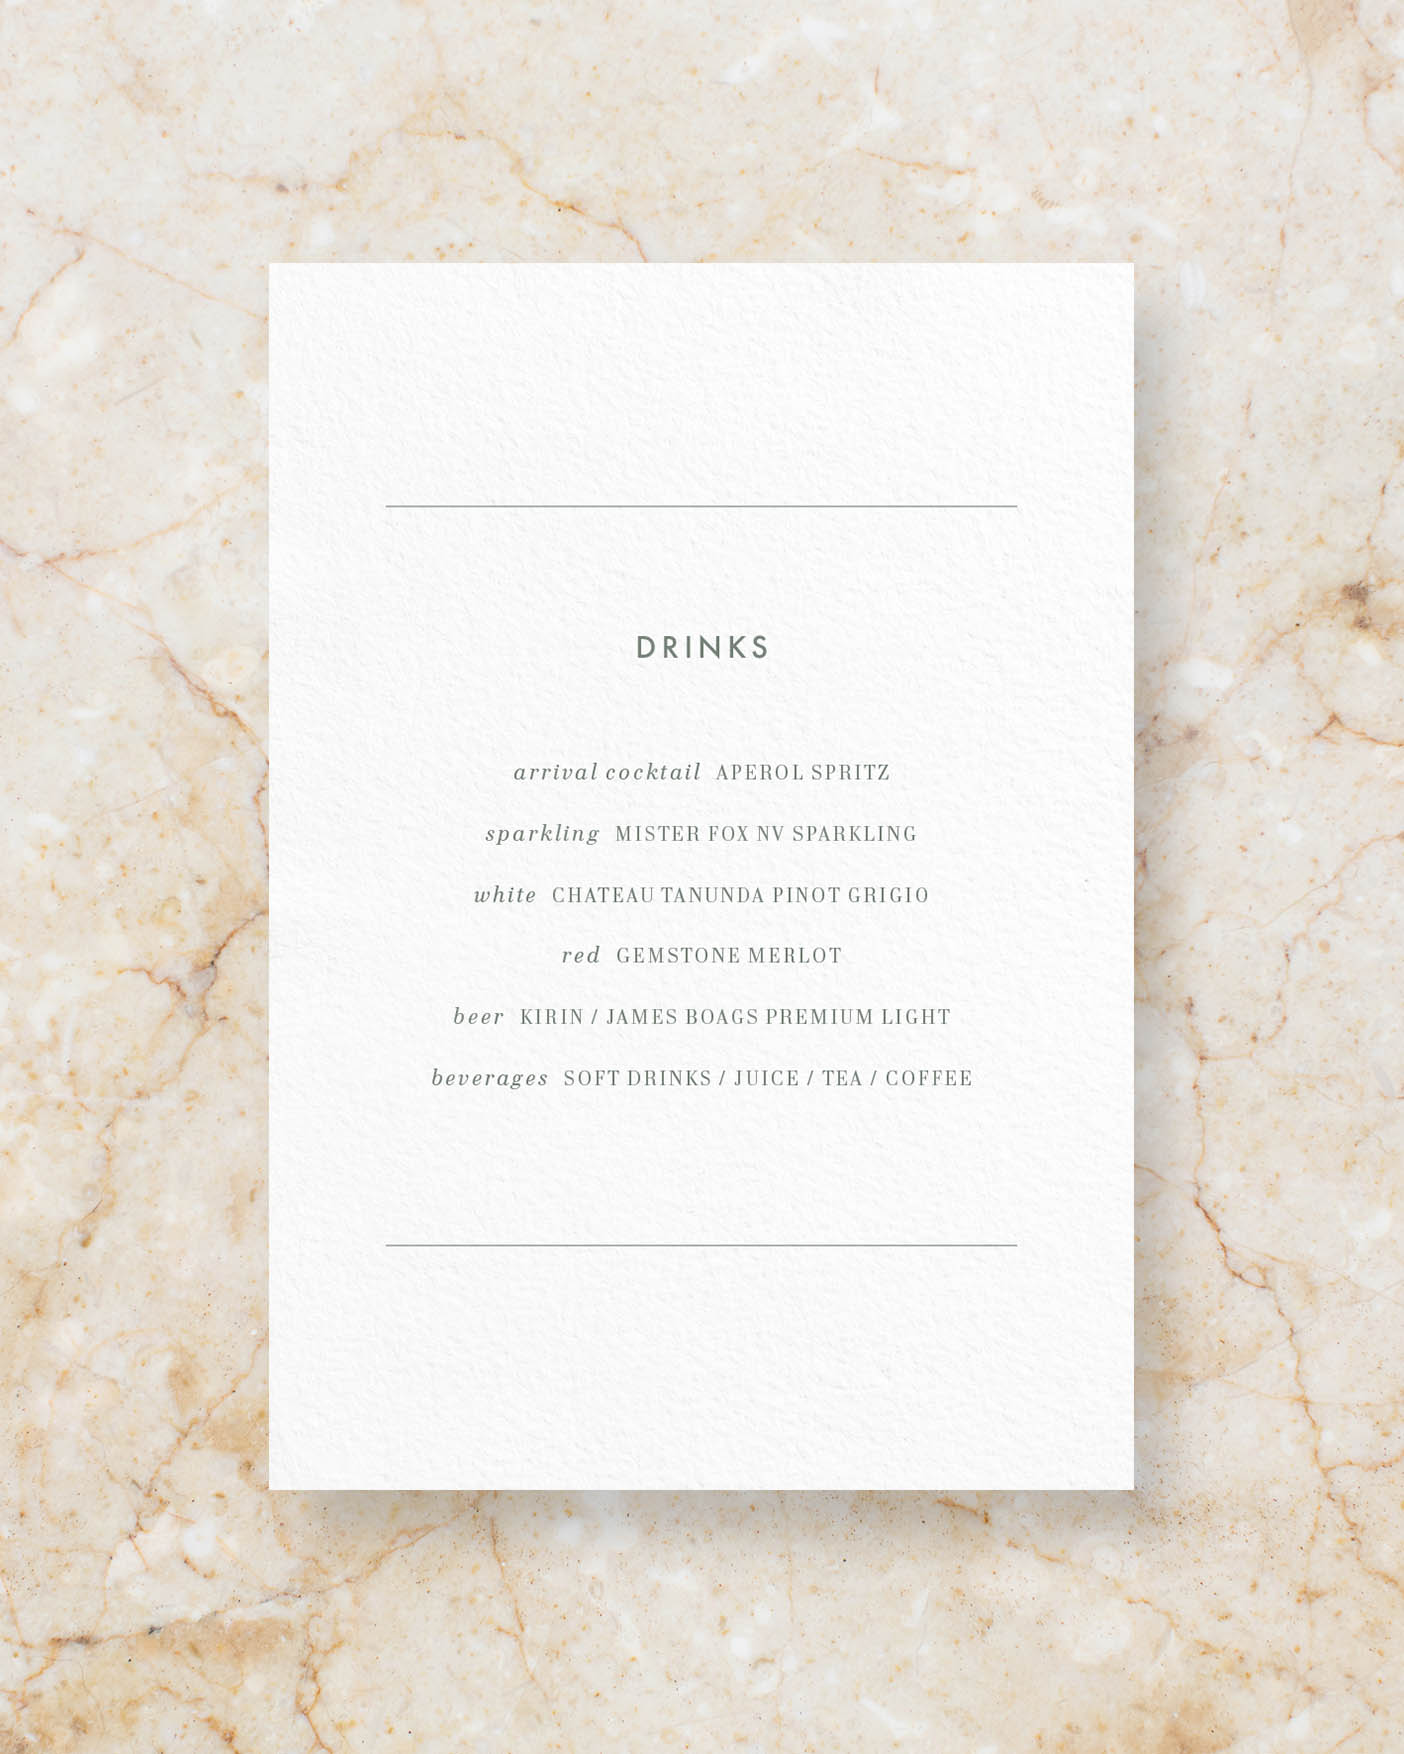 Drinks menu A5 - White